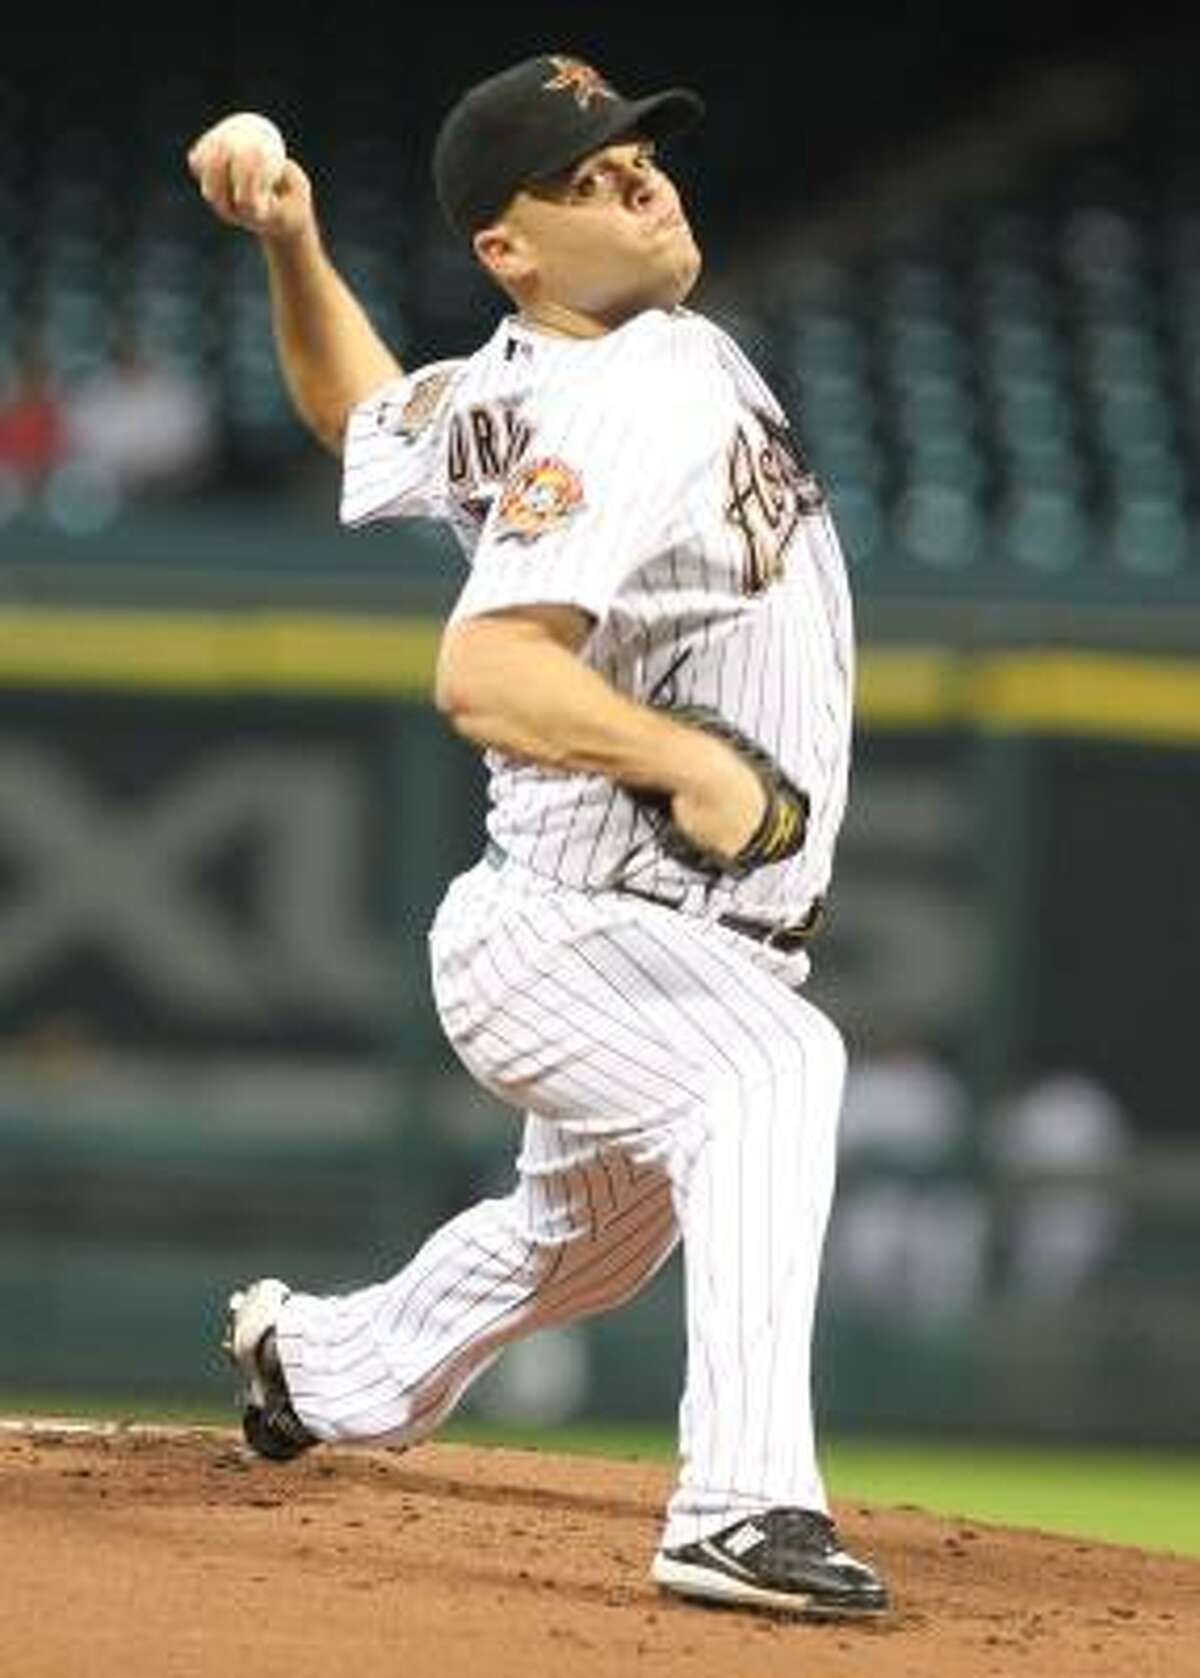 Astros pitcher Wandy Rodriguez finished the 2010 season with 13 consecutive quality starts and a 1.75 ERA in that stretch.